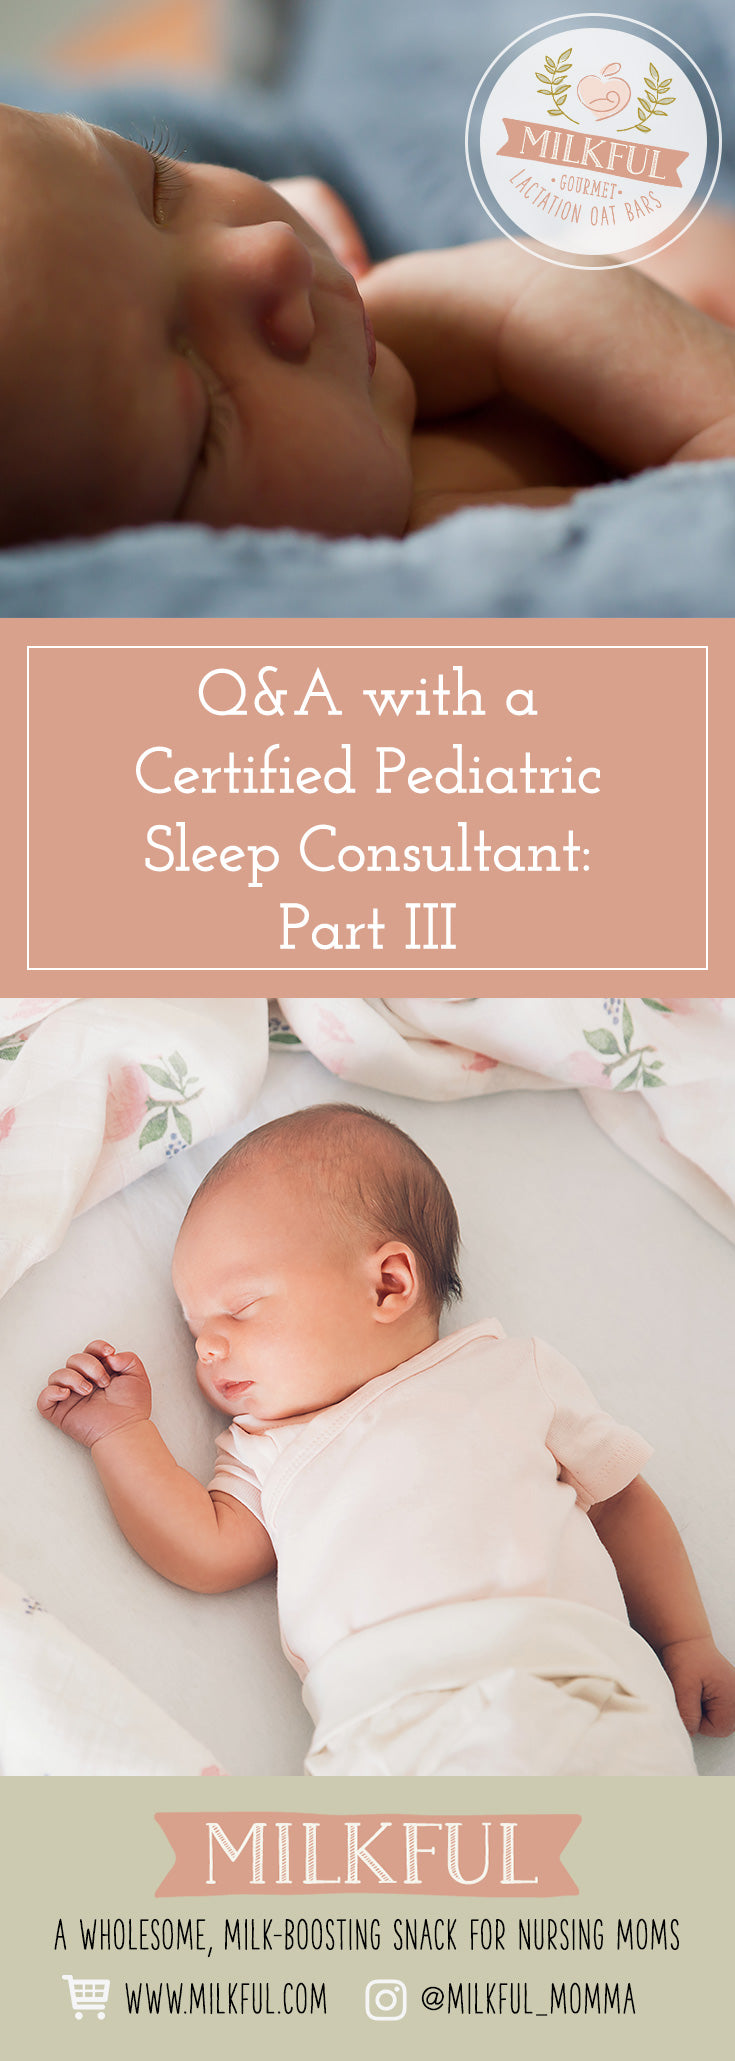 Q&A with a Certified Pediatric Sleep Consultant: Part III